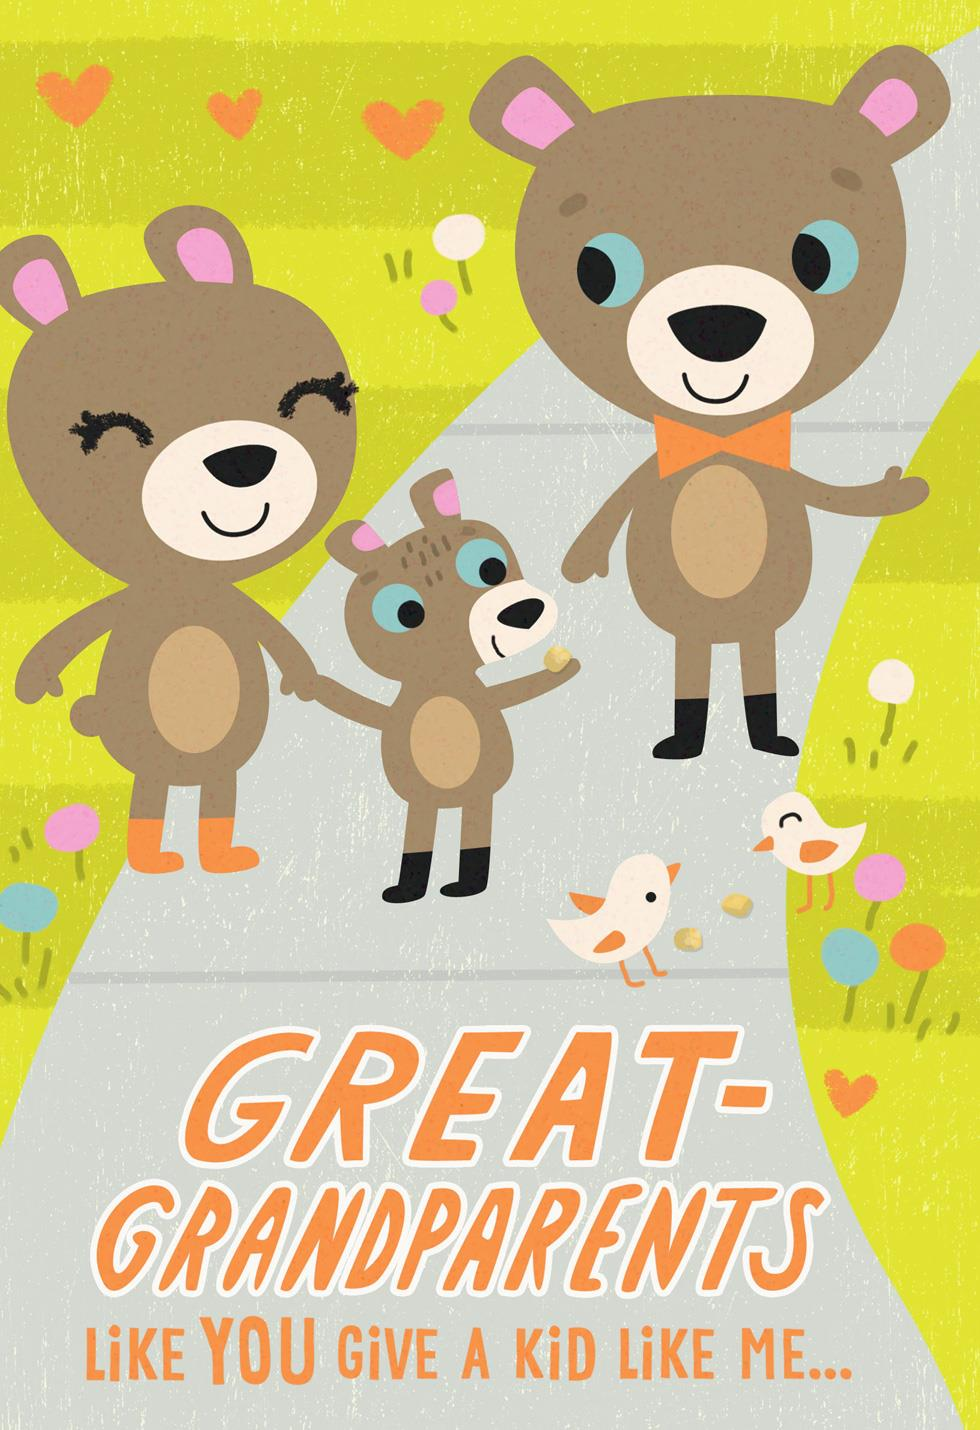 Bear family grandparents day card for great grandparents bear family grandparents day card for great grandparents kristyandbryce Gallery